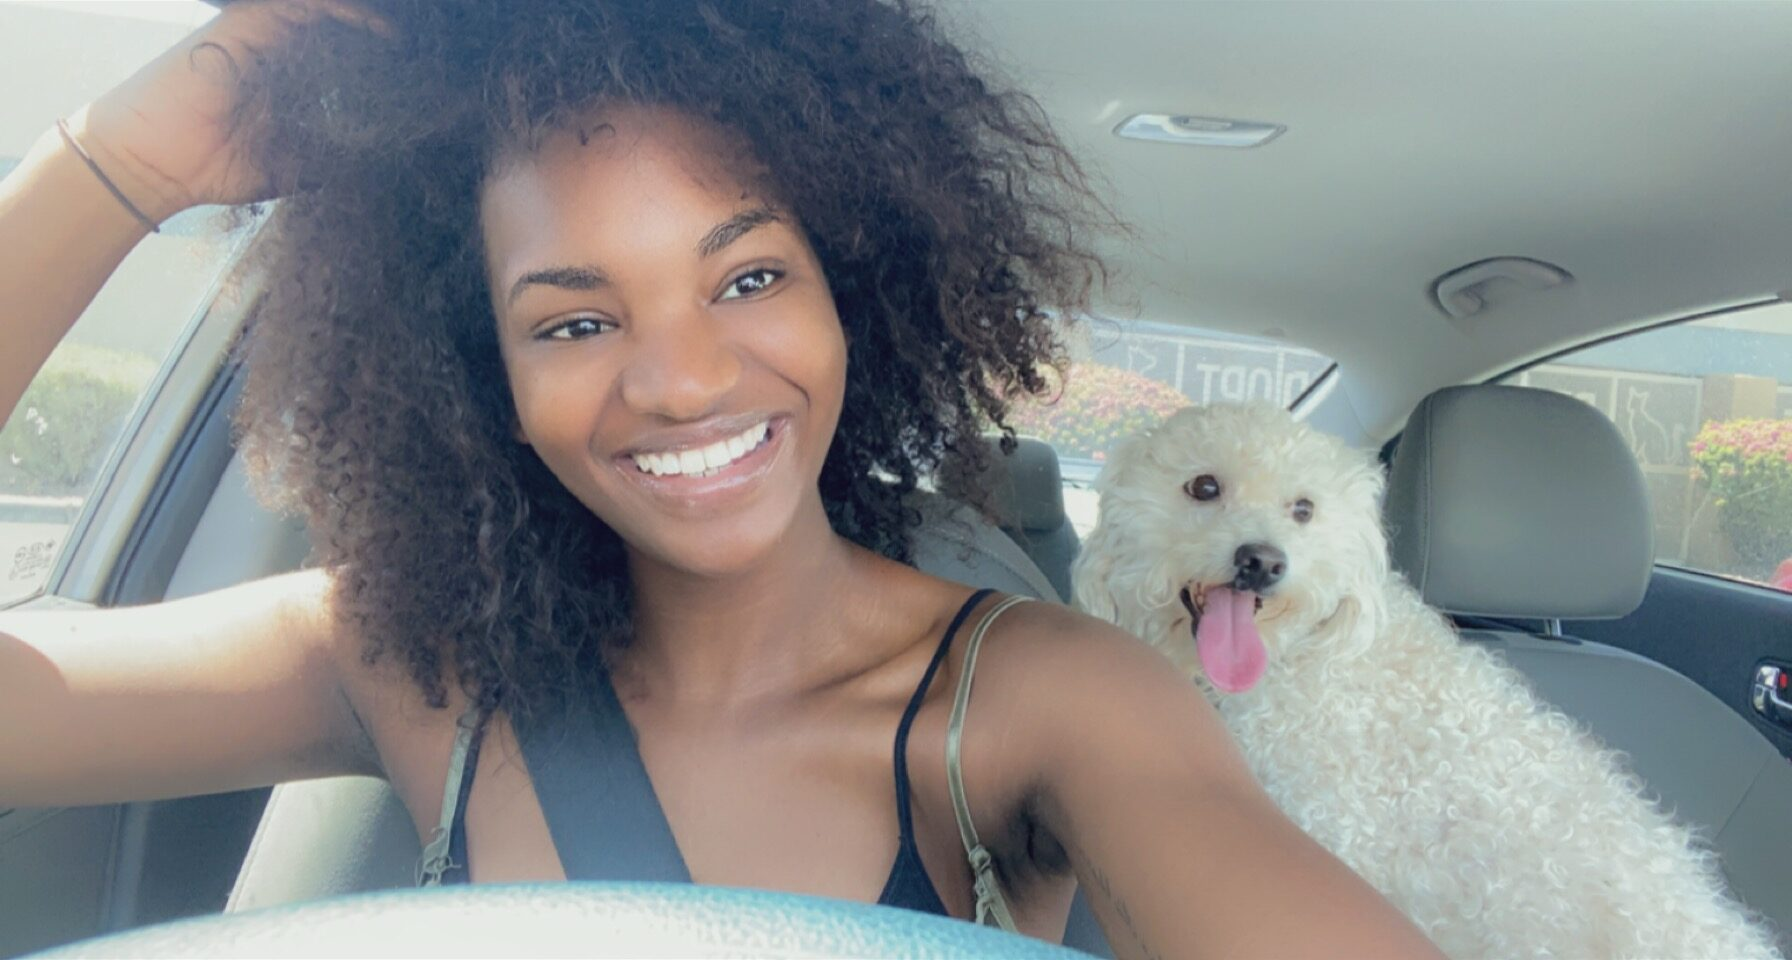 woman taking a selfie in the car with her dog